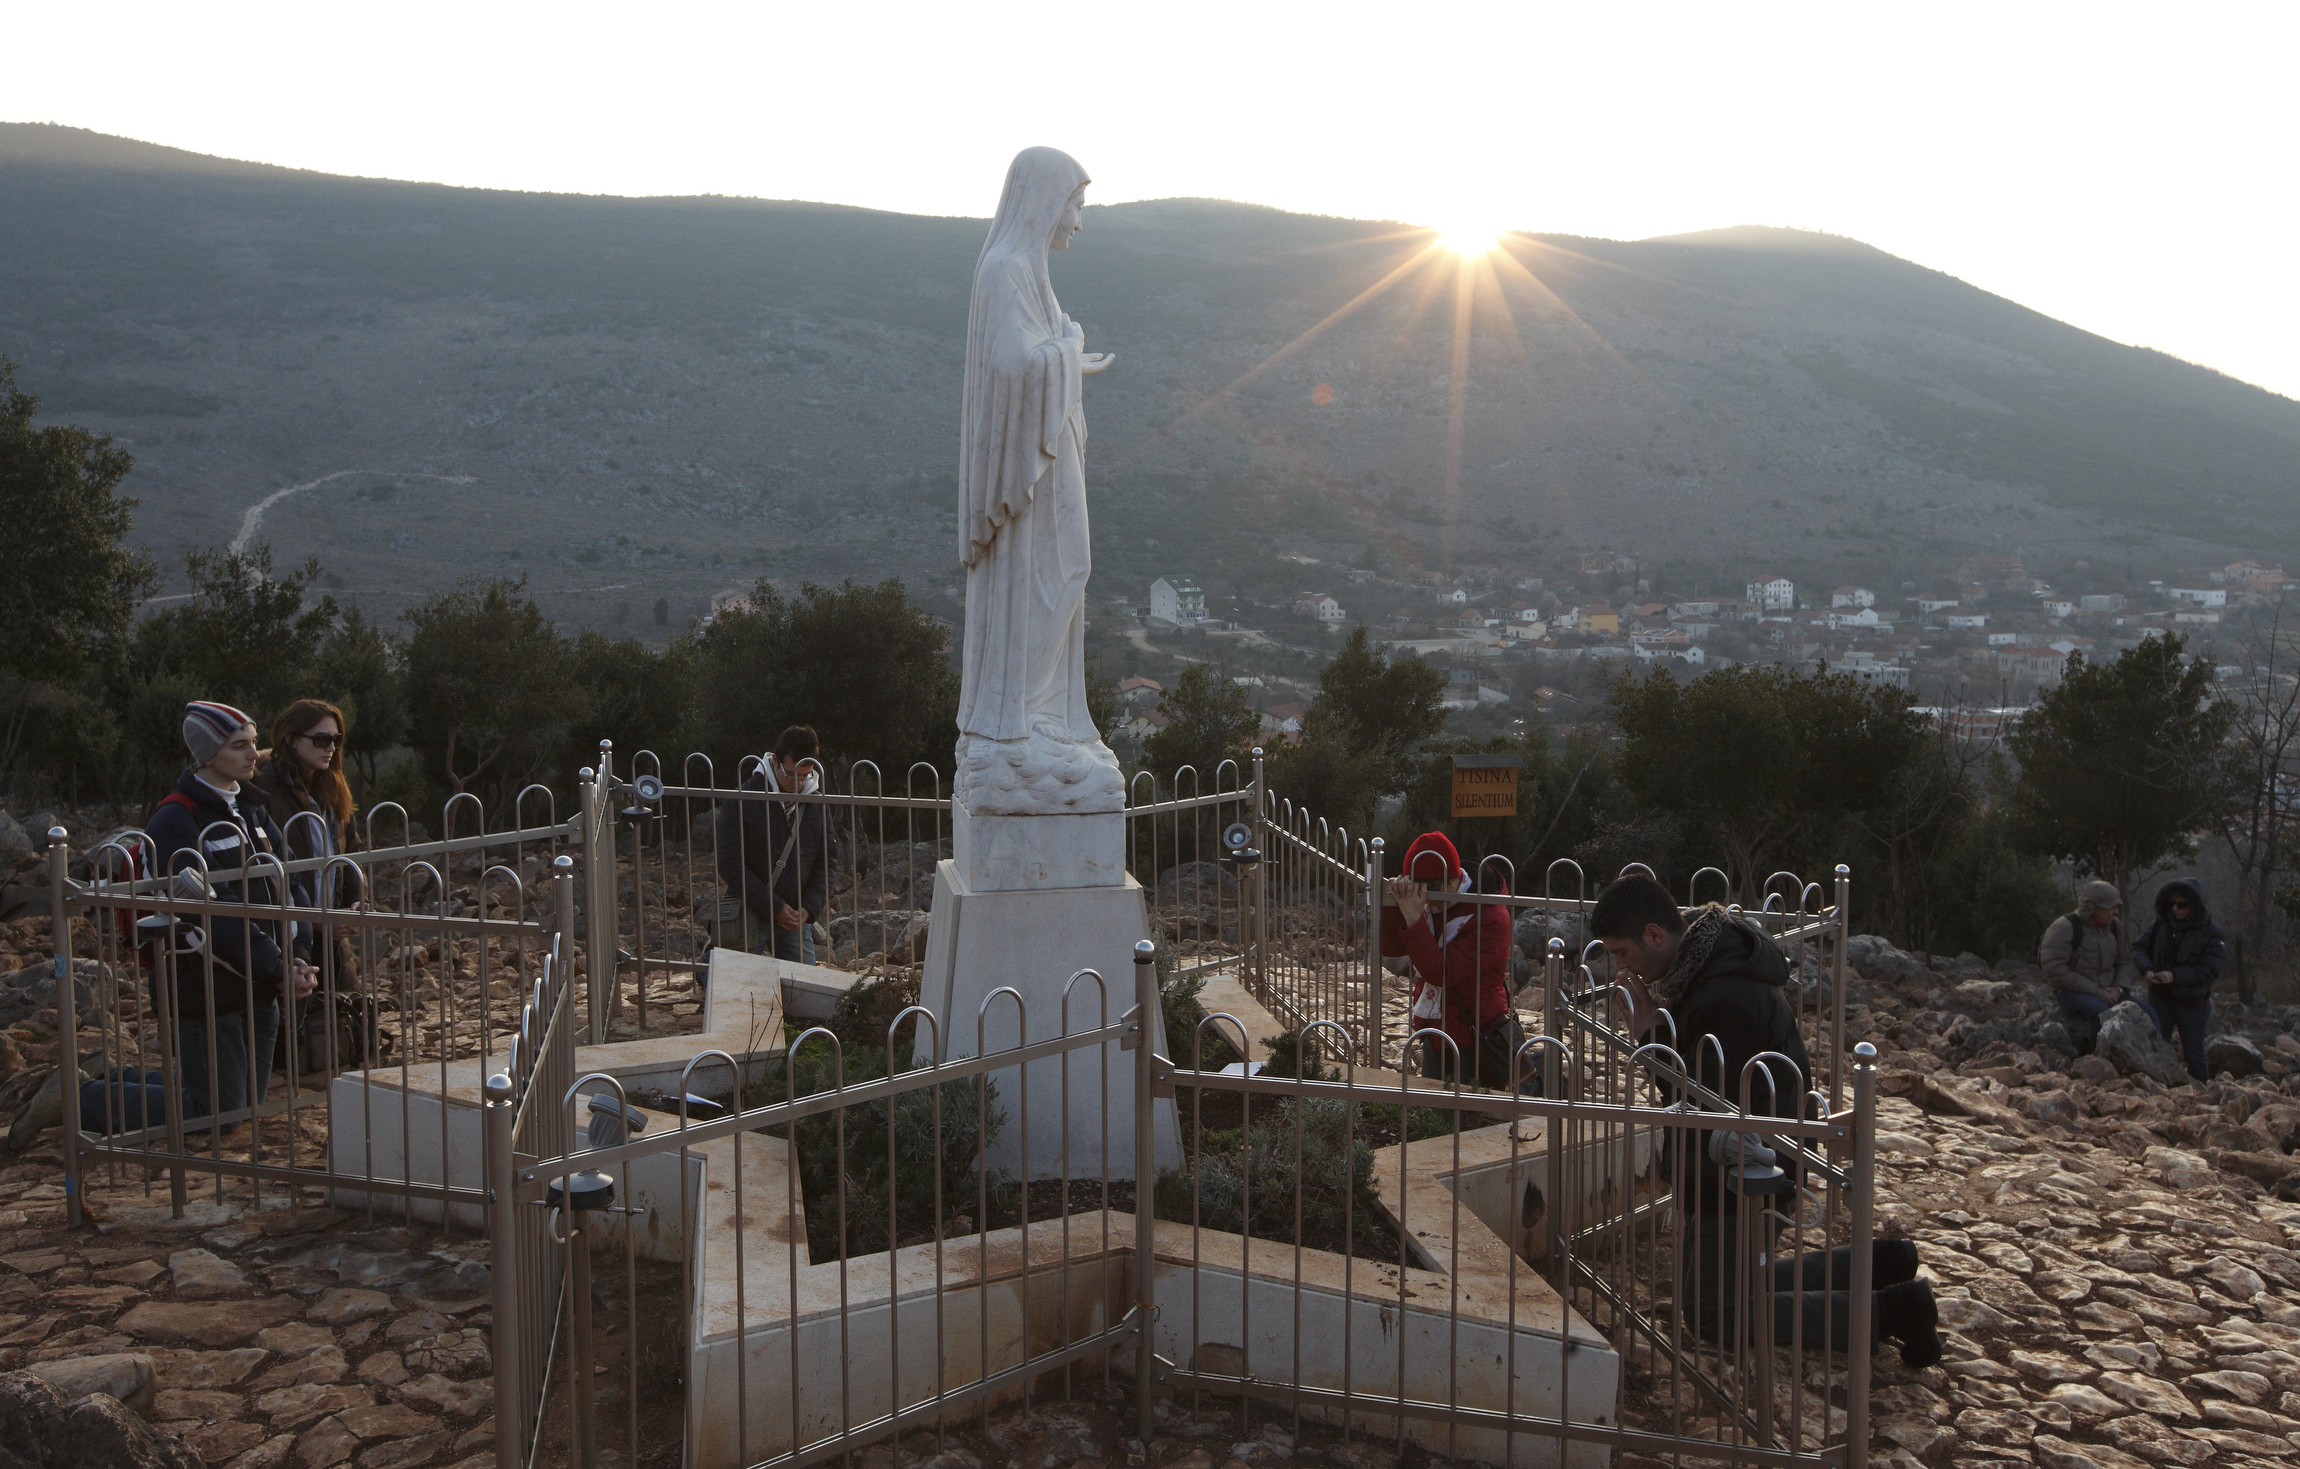 Pilgrims pray around a statue of Mary on Apparition Hill in Medjugorje, Bosnia-Herzegovina, Feb. 26. The site is where six village children first claimed to see Mary in June 1981. A Vatican-appointed commission is studying the alleged Marian apparitions at Medjugorje. CNS photo/Paul Haring) (Feb. 28, 2011) See MEDJUGORJE-PILGRIMS Feb. 28, 2011.